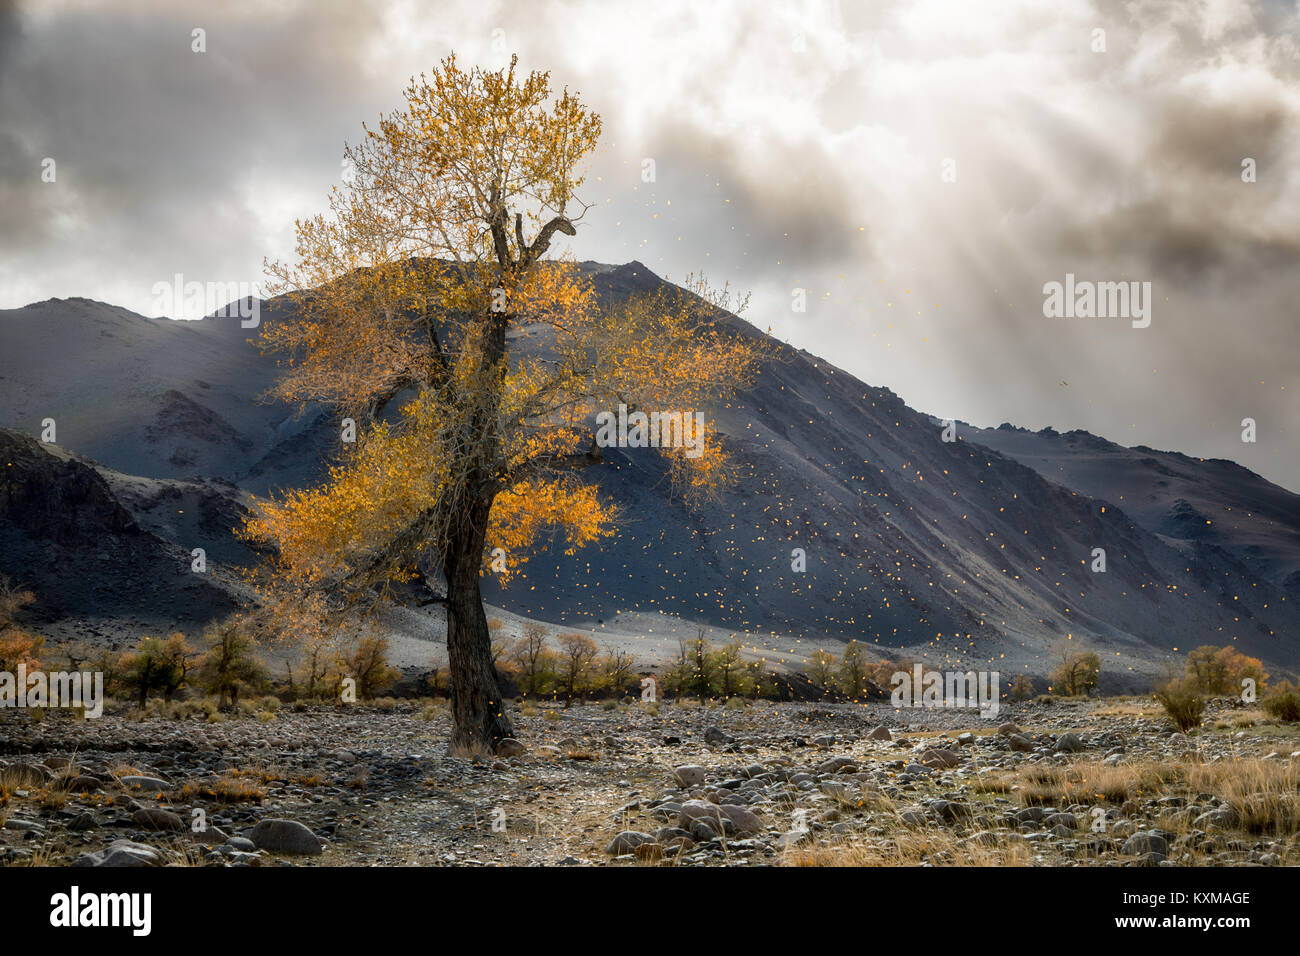 Mongolia yellow leafs tree fall landscape river bank sun rays - Stock Image